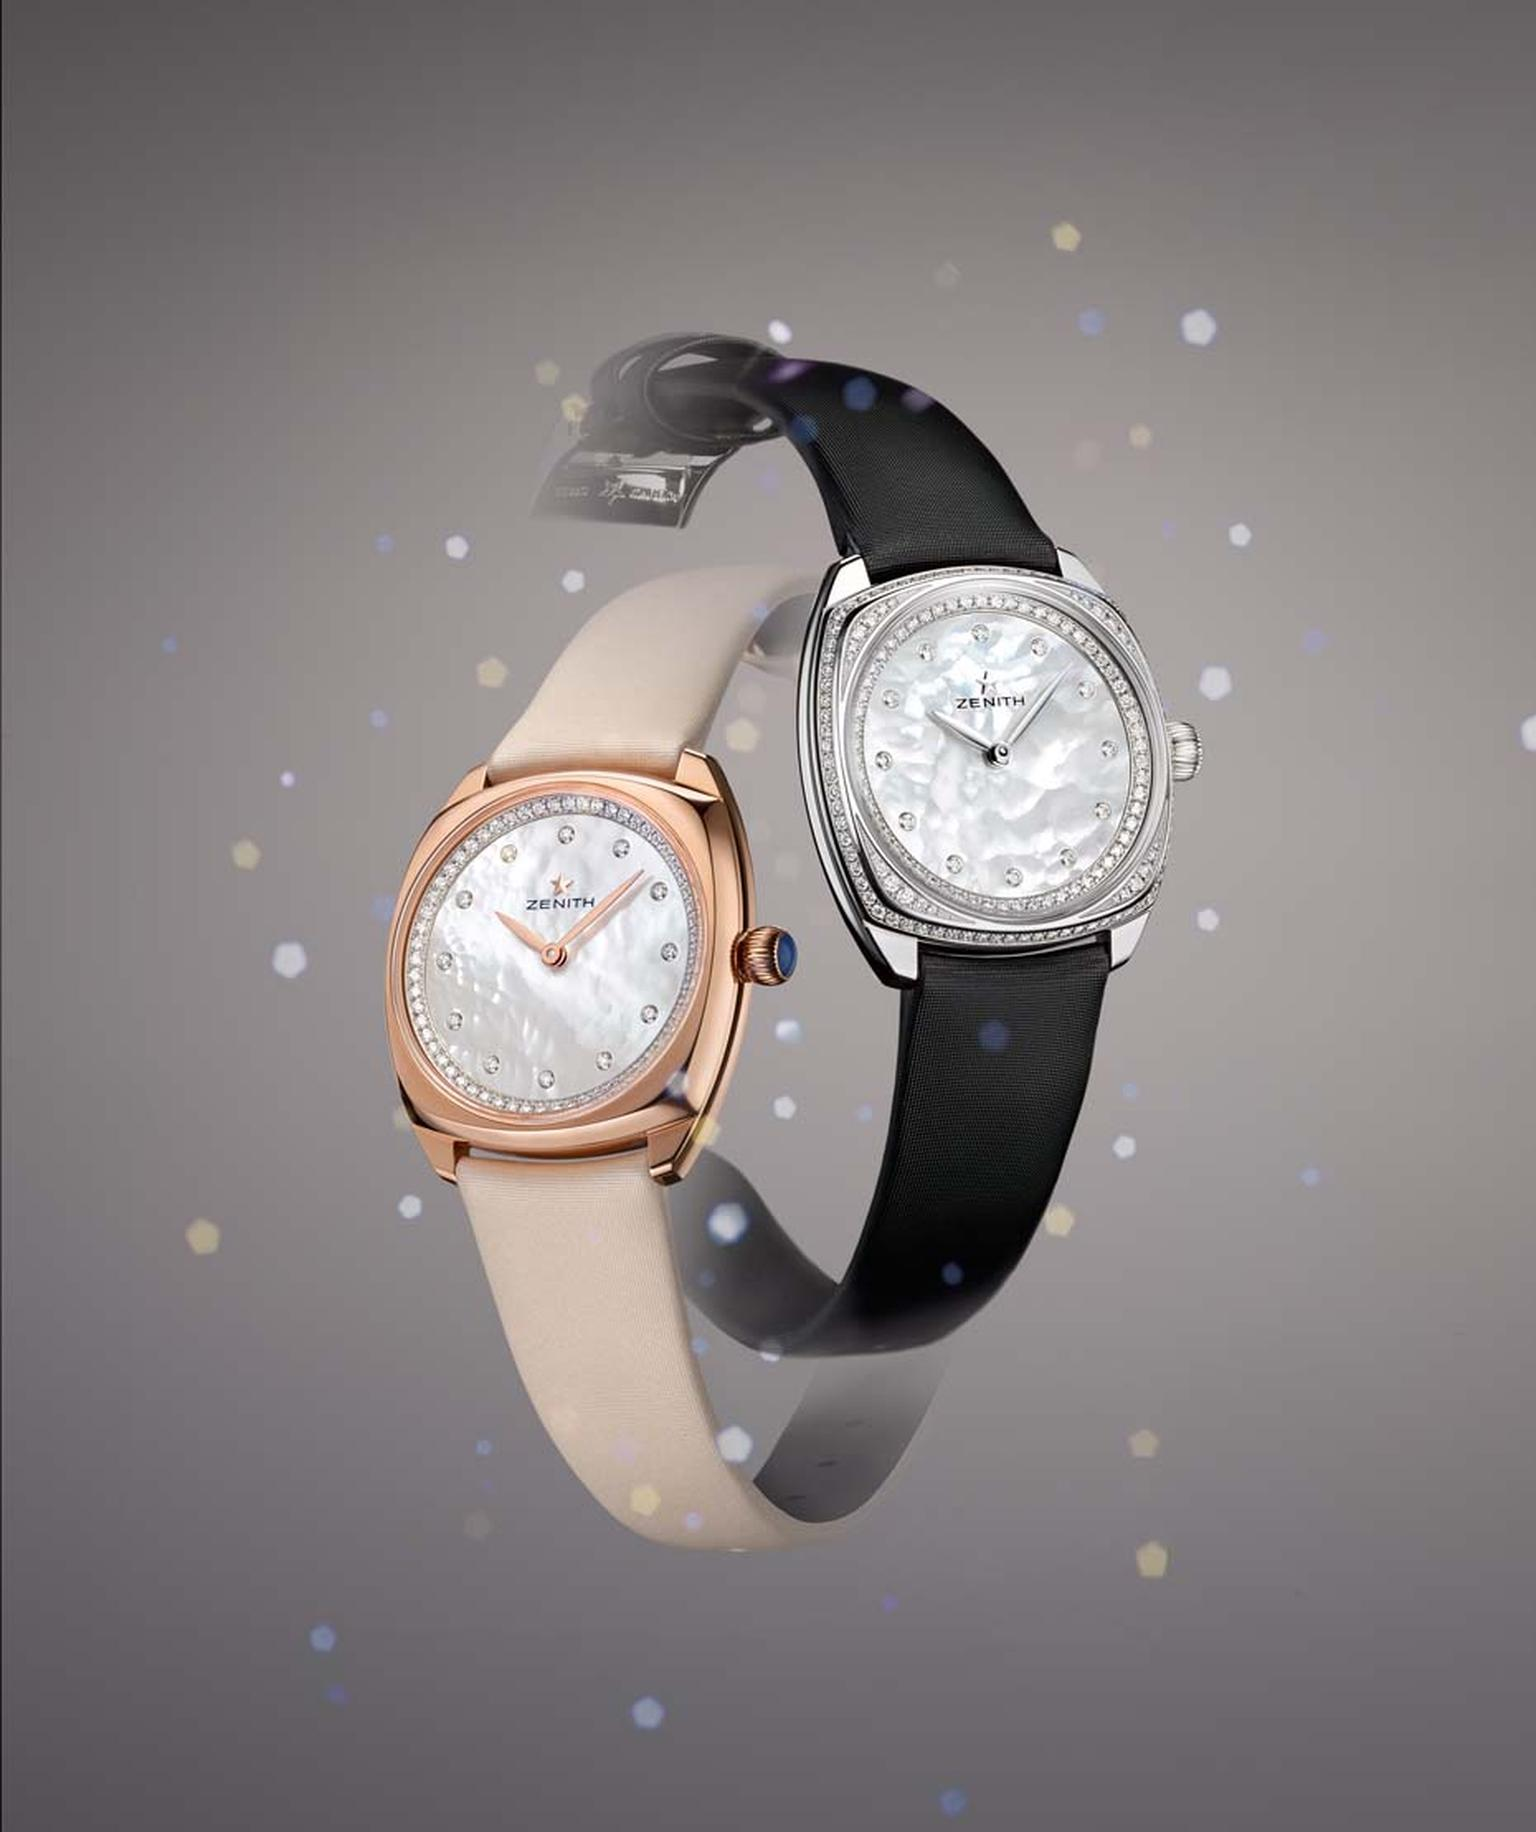 Three new models join the Zenith Star collection this year: in rose and white gold with a sprinkling of diamonds or a version full-set brilliant-cut diamonds.